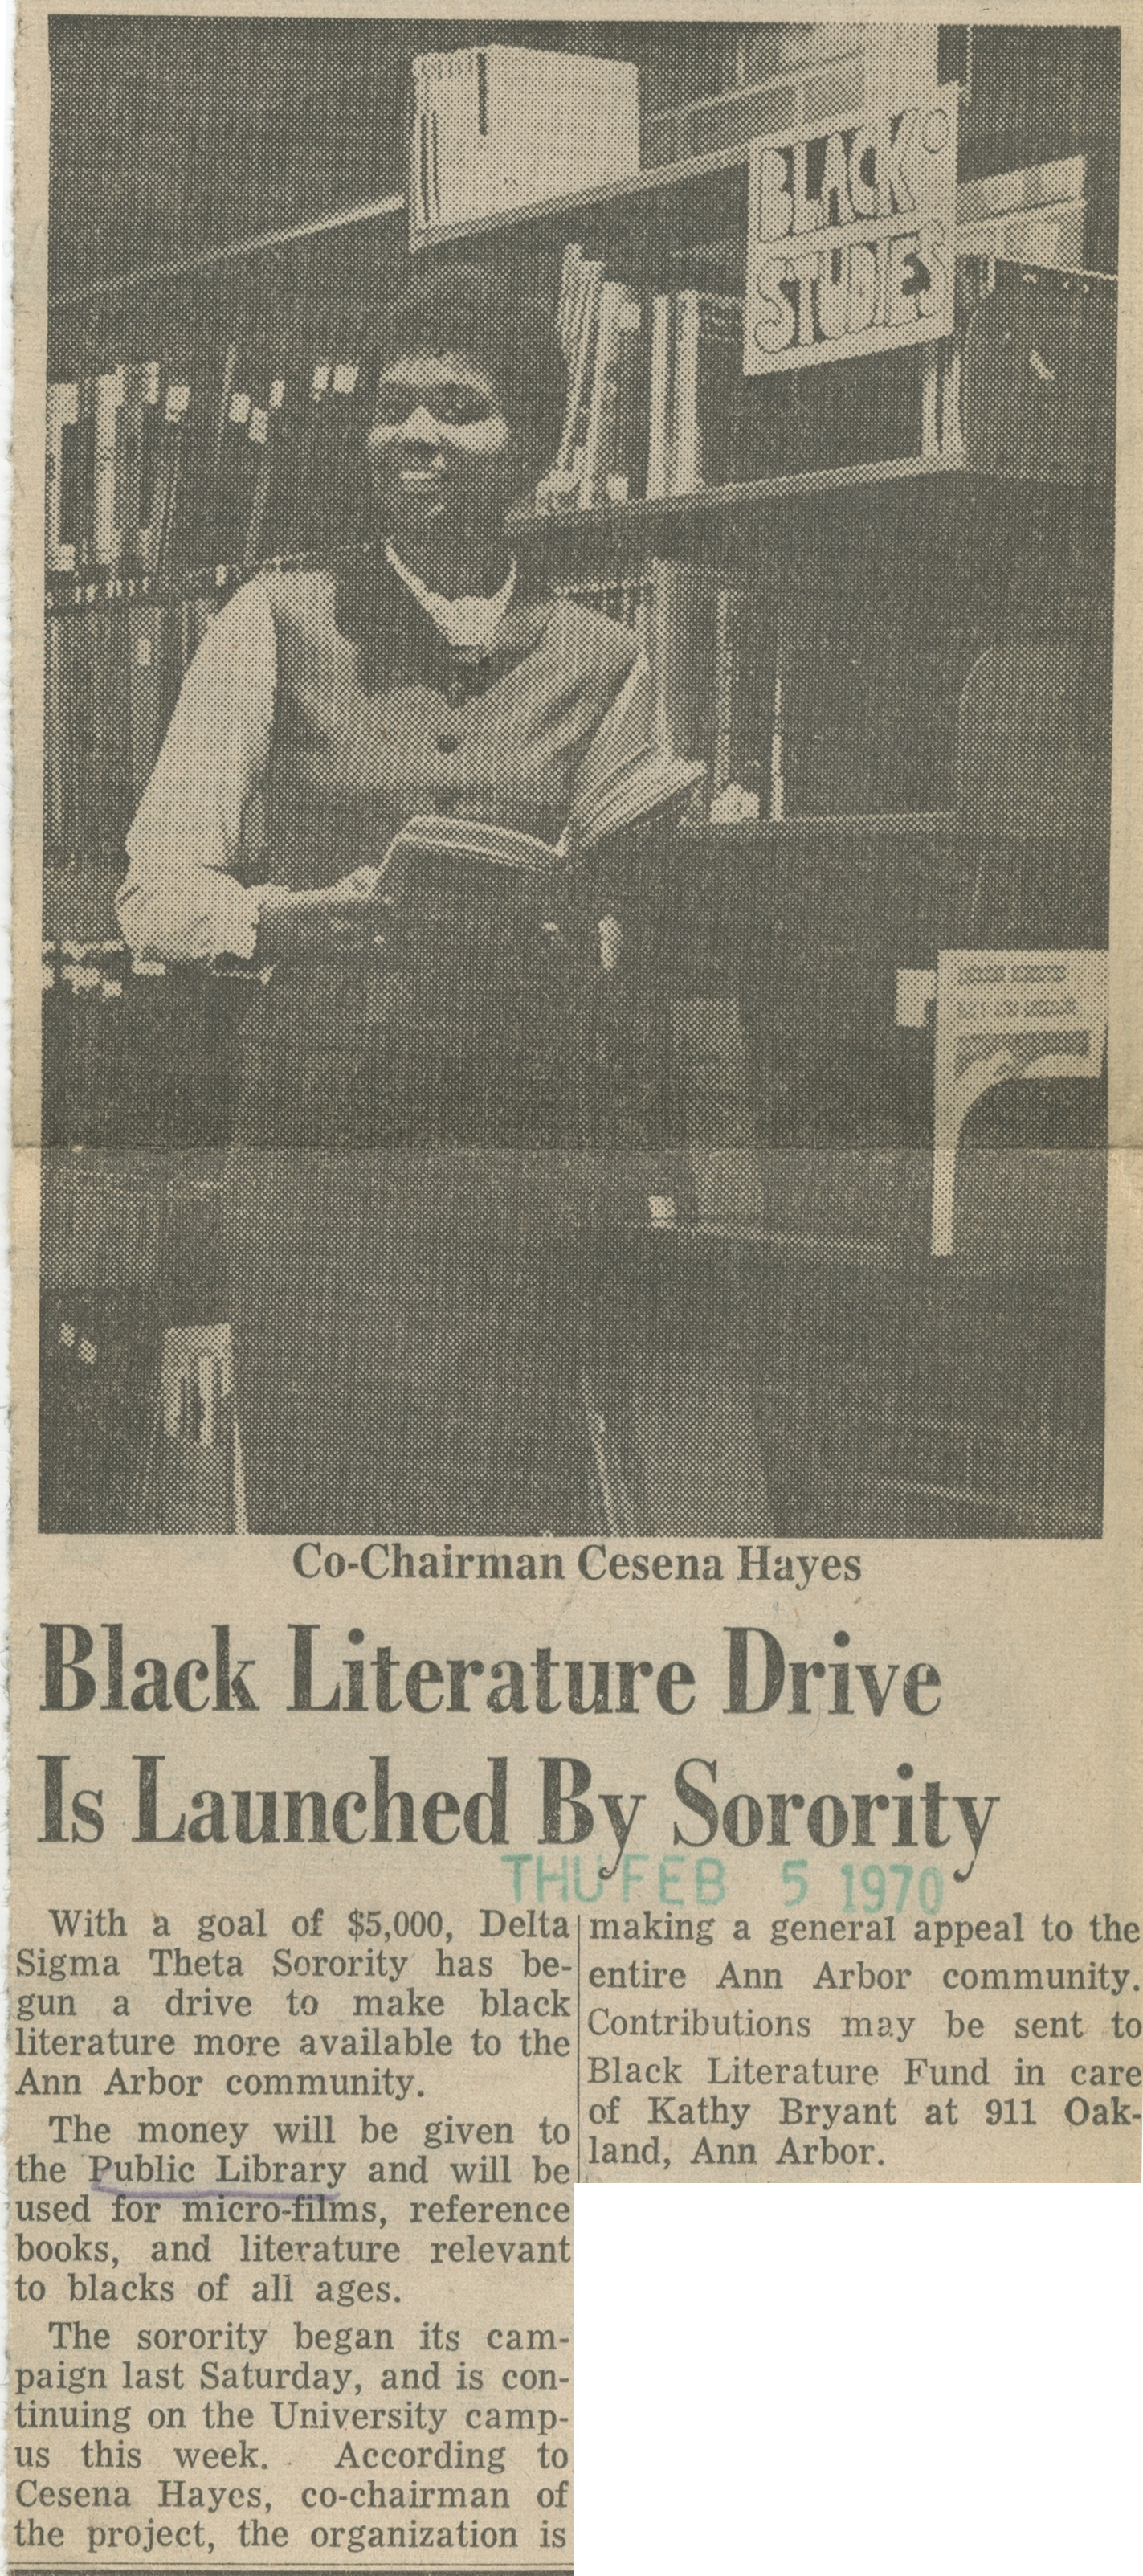 Black Literature Drive Is Launched By Sorority image